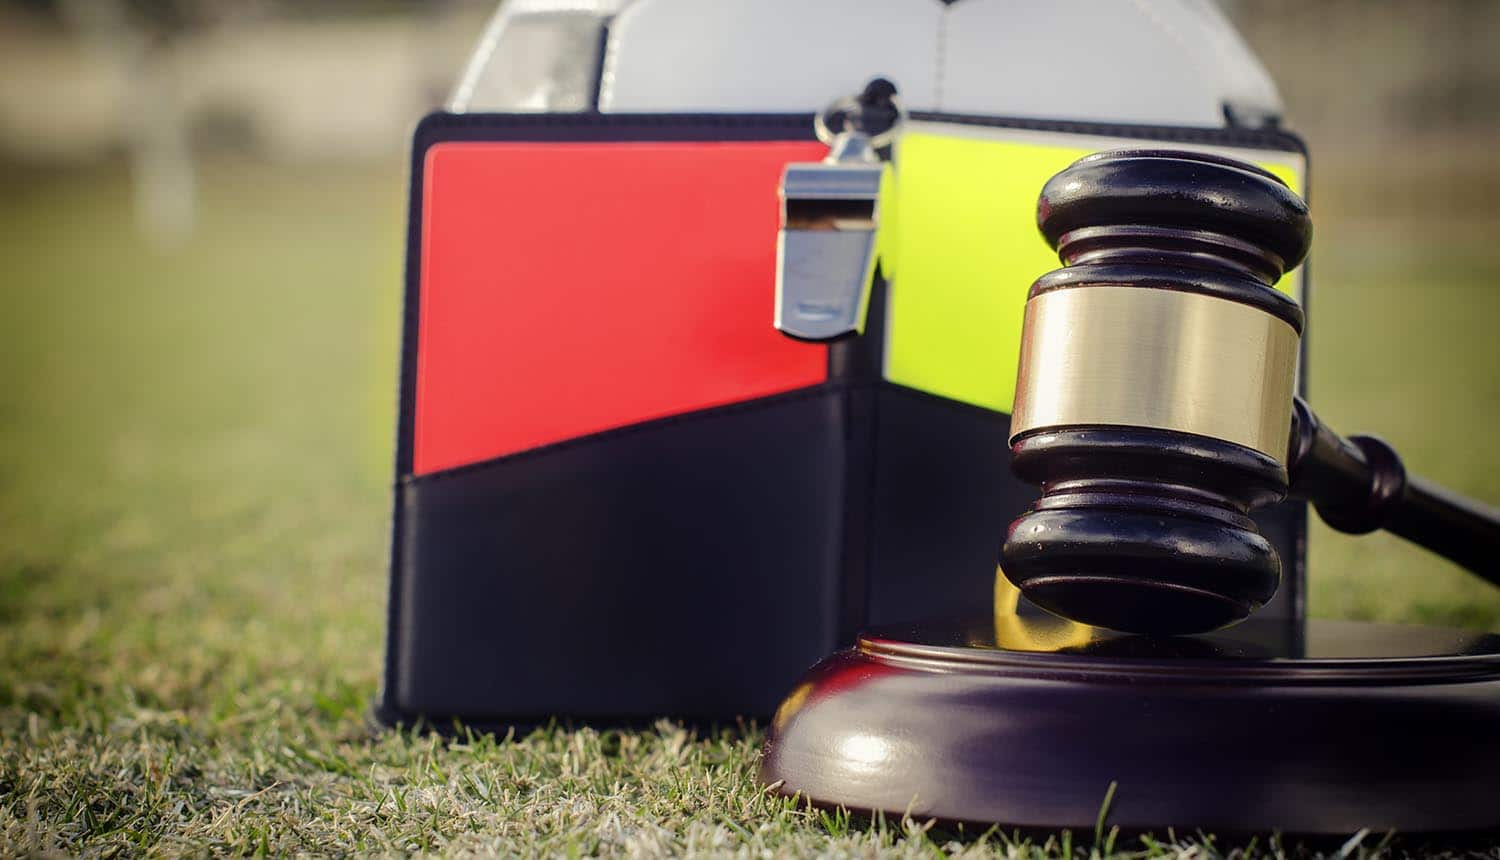 Image of hammer and gavel against backrop of soccer ball and red and yellow cards representing data protection